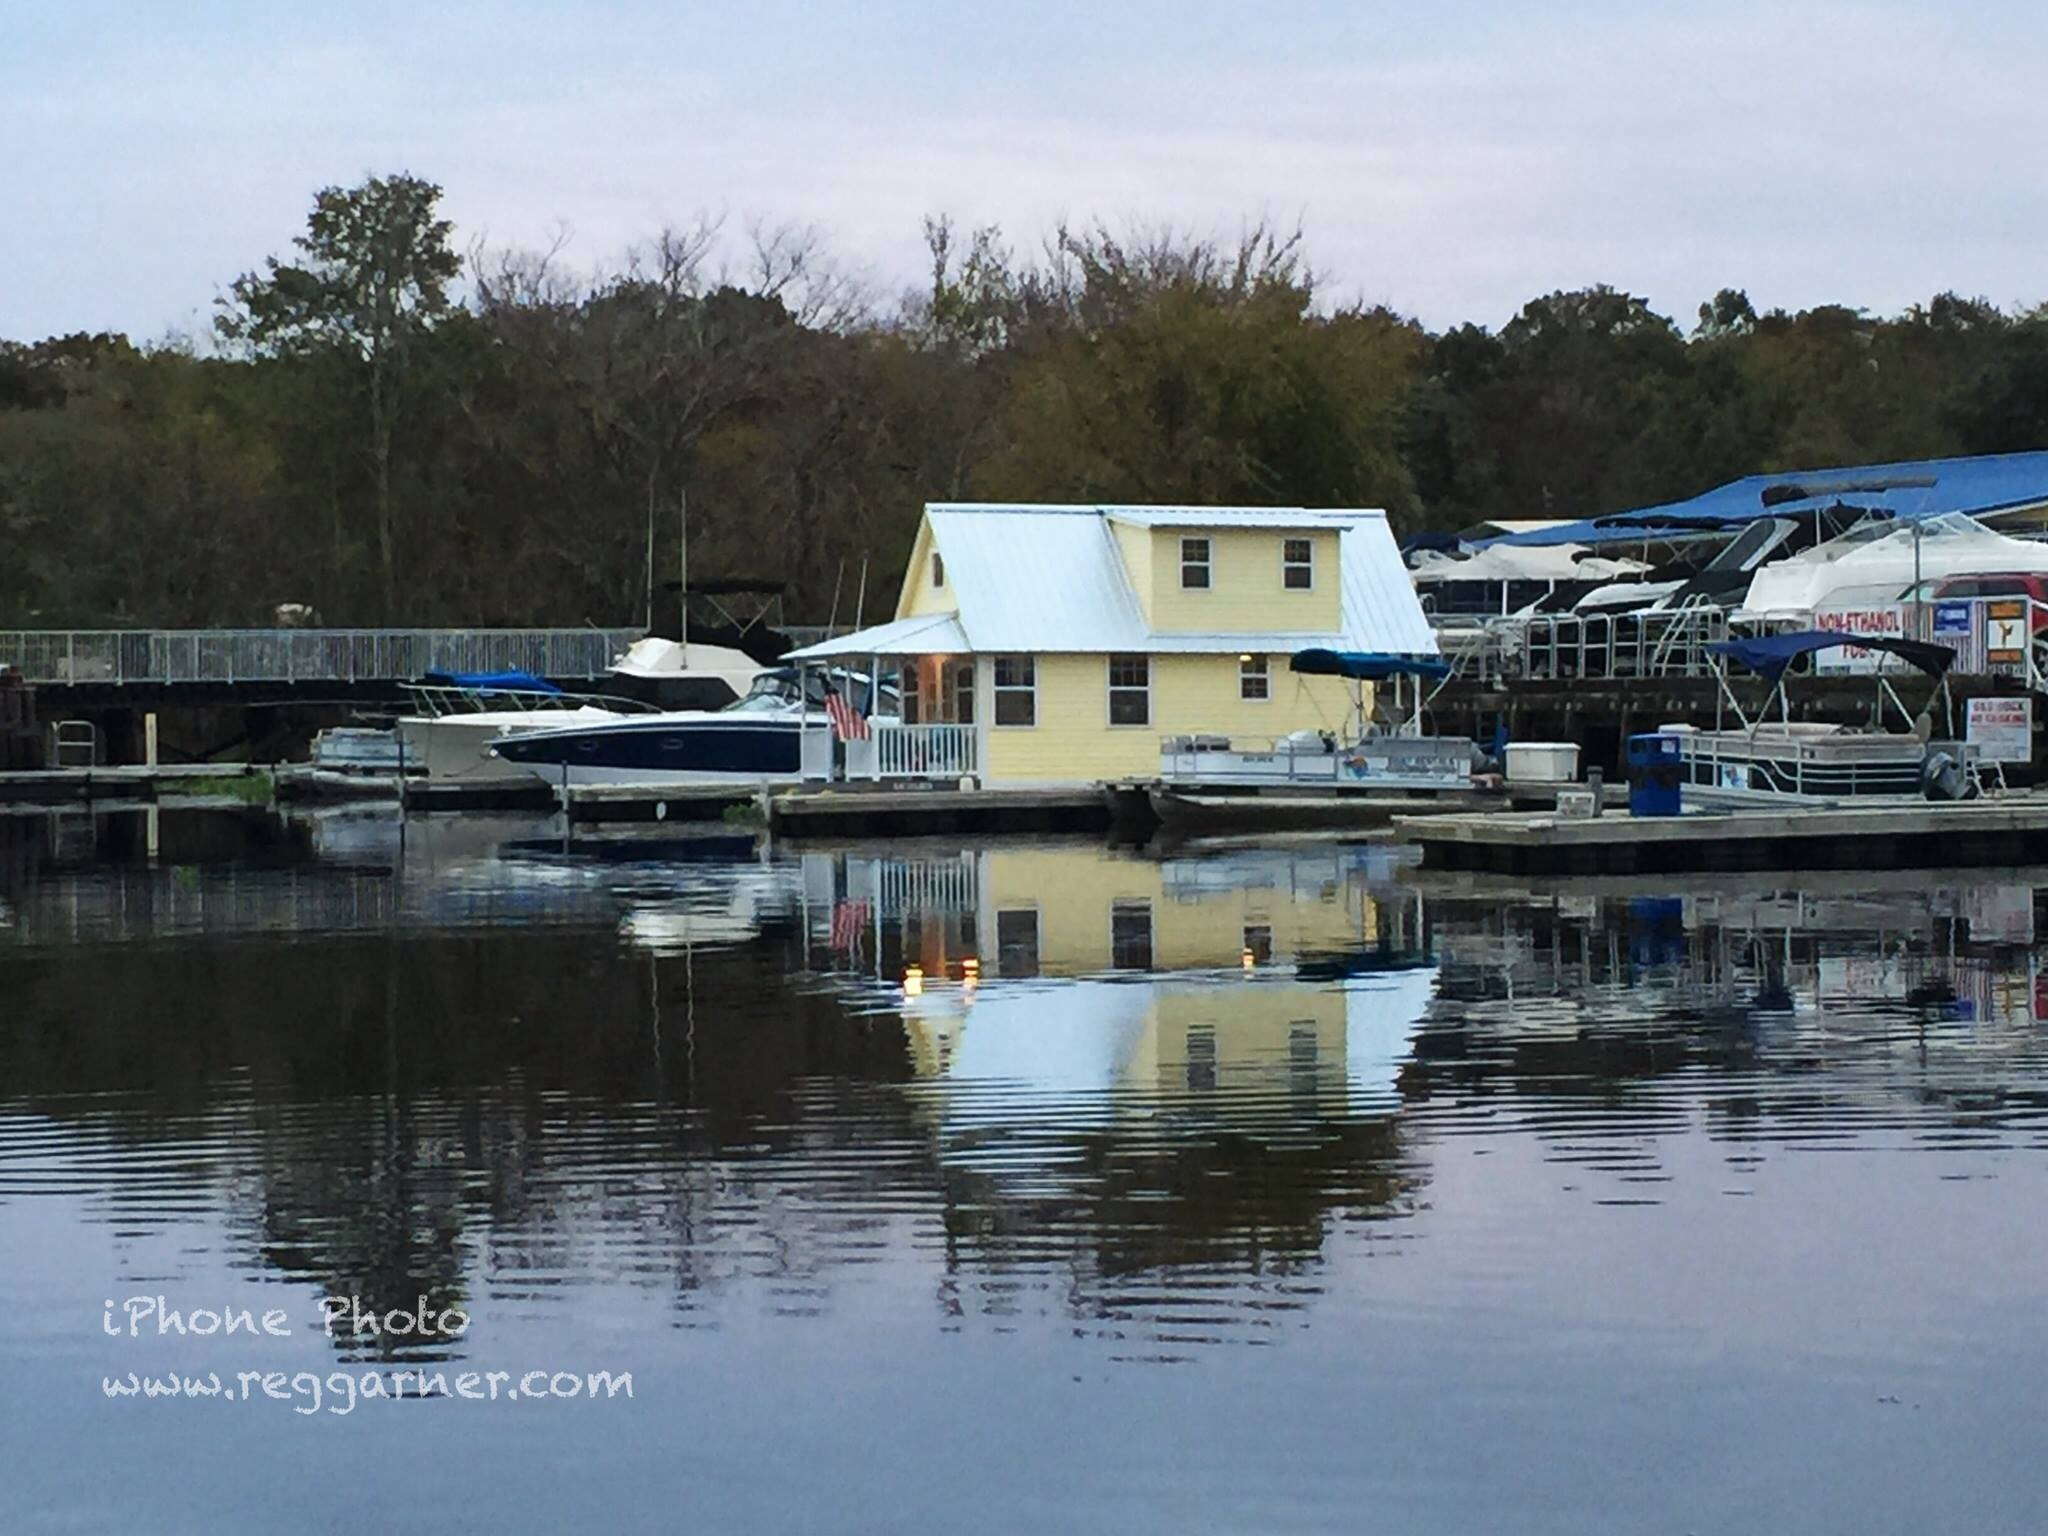 Central Florida House Boats - Floating Bungalows Made in